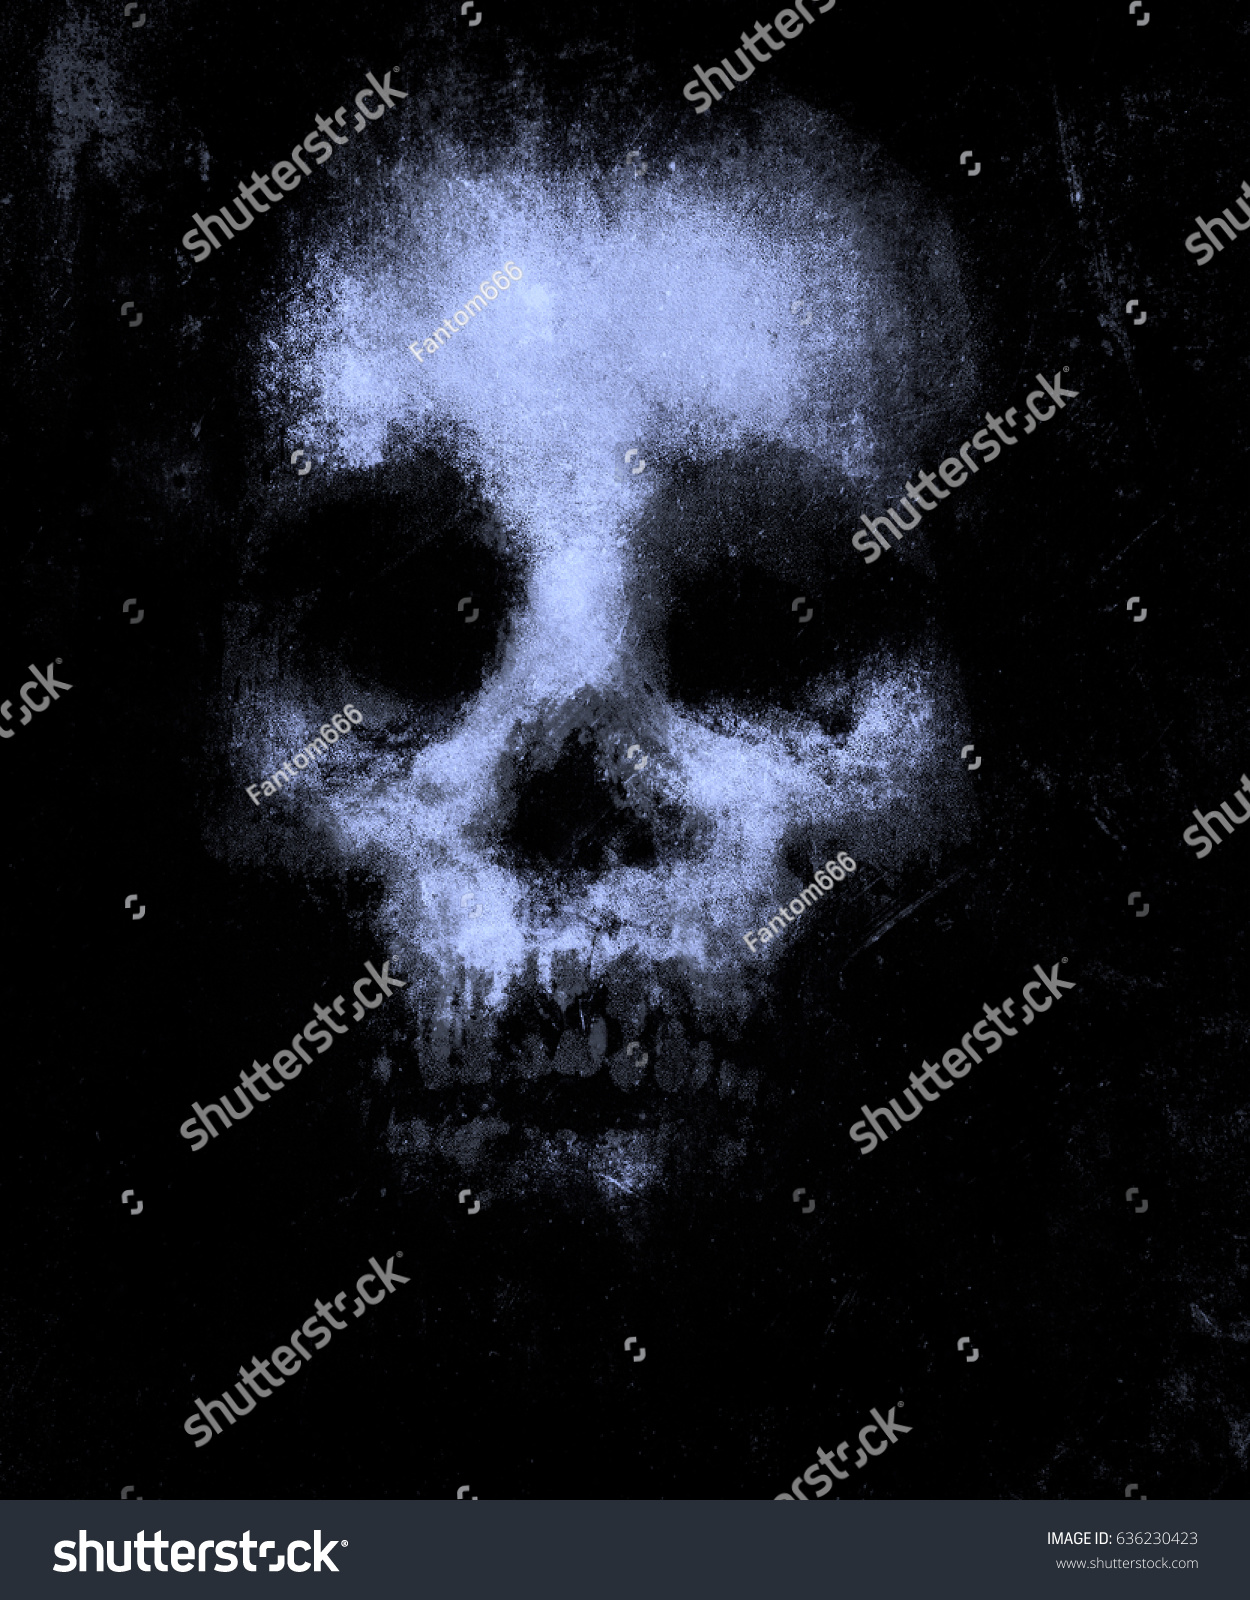 Good Wallpaper Halloween Skeleton - stock-photo-horror-skull-horror-background-for-halloween-concept-and-movie-poster-project-scary-wallpaper-636230423  Perfect Image Reference_327010.jpg